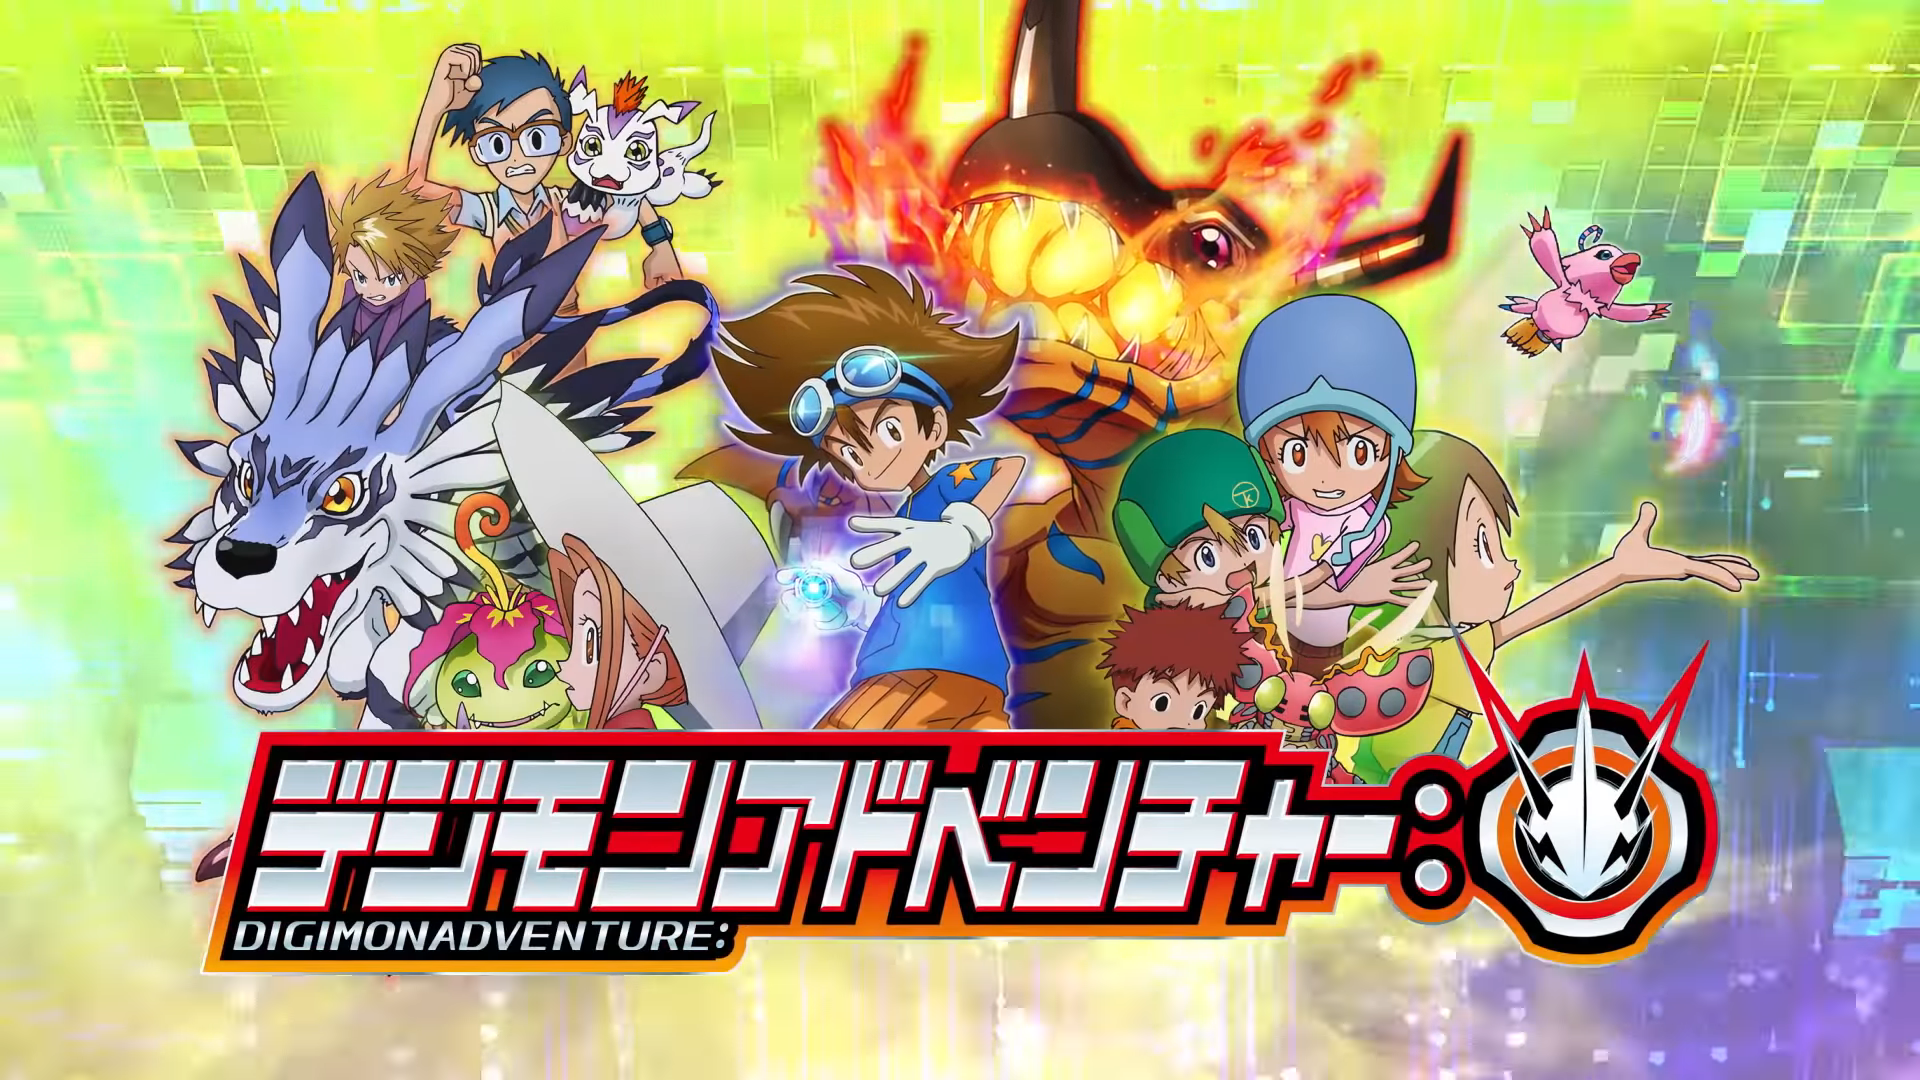 Photo of Títulos de los episodios 19 al 23 de Digimon Adventure: